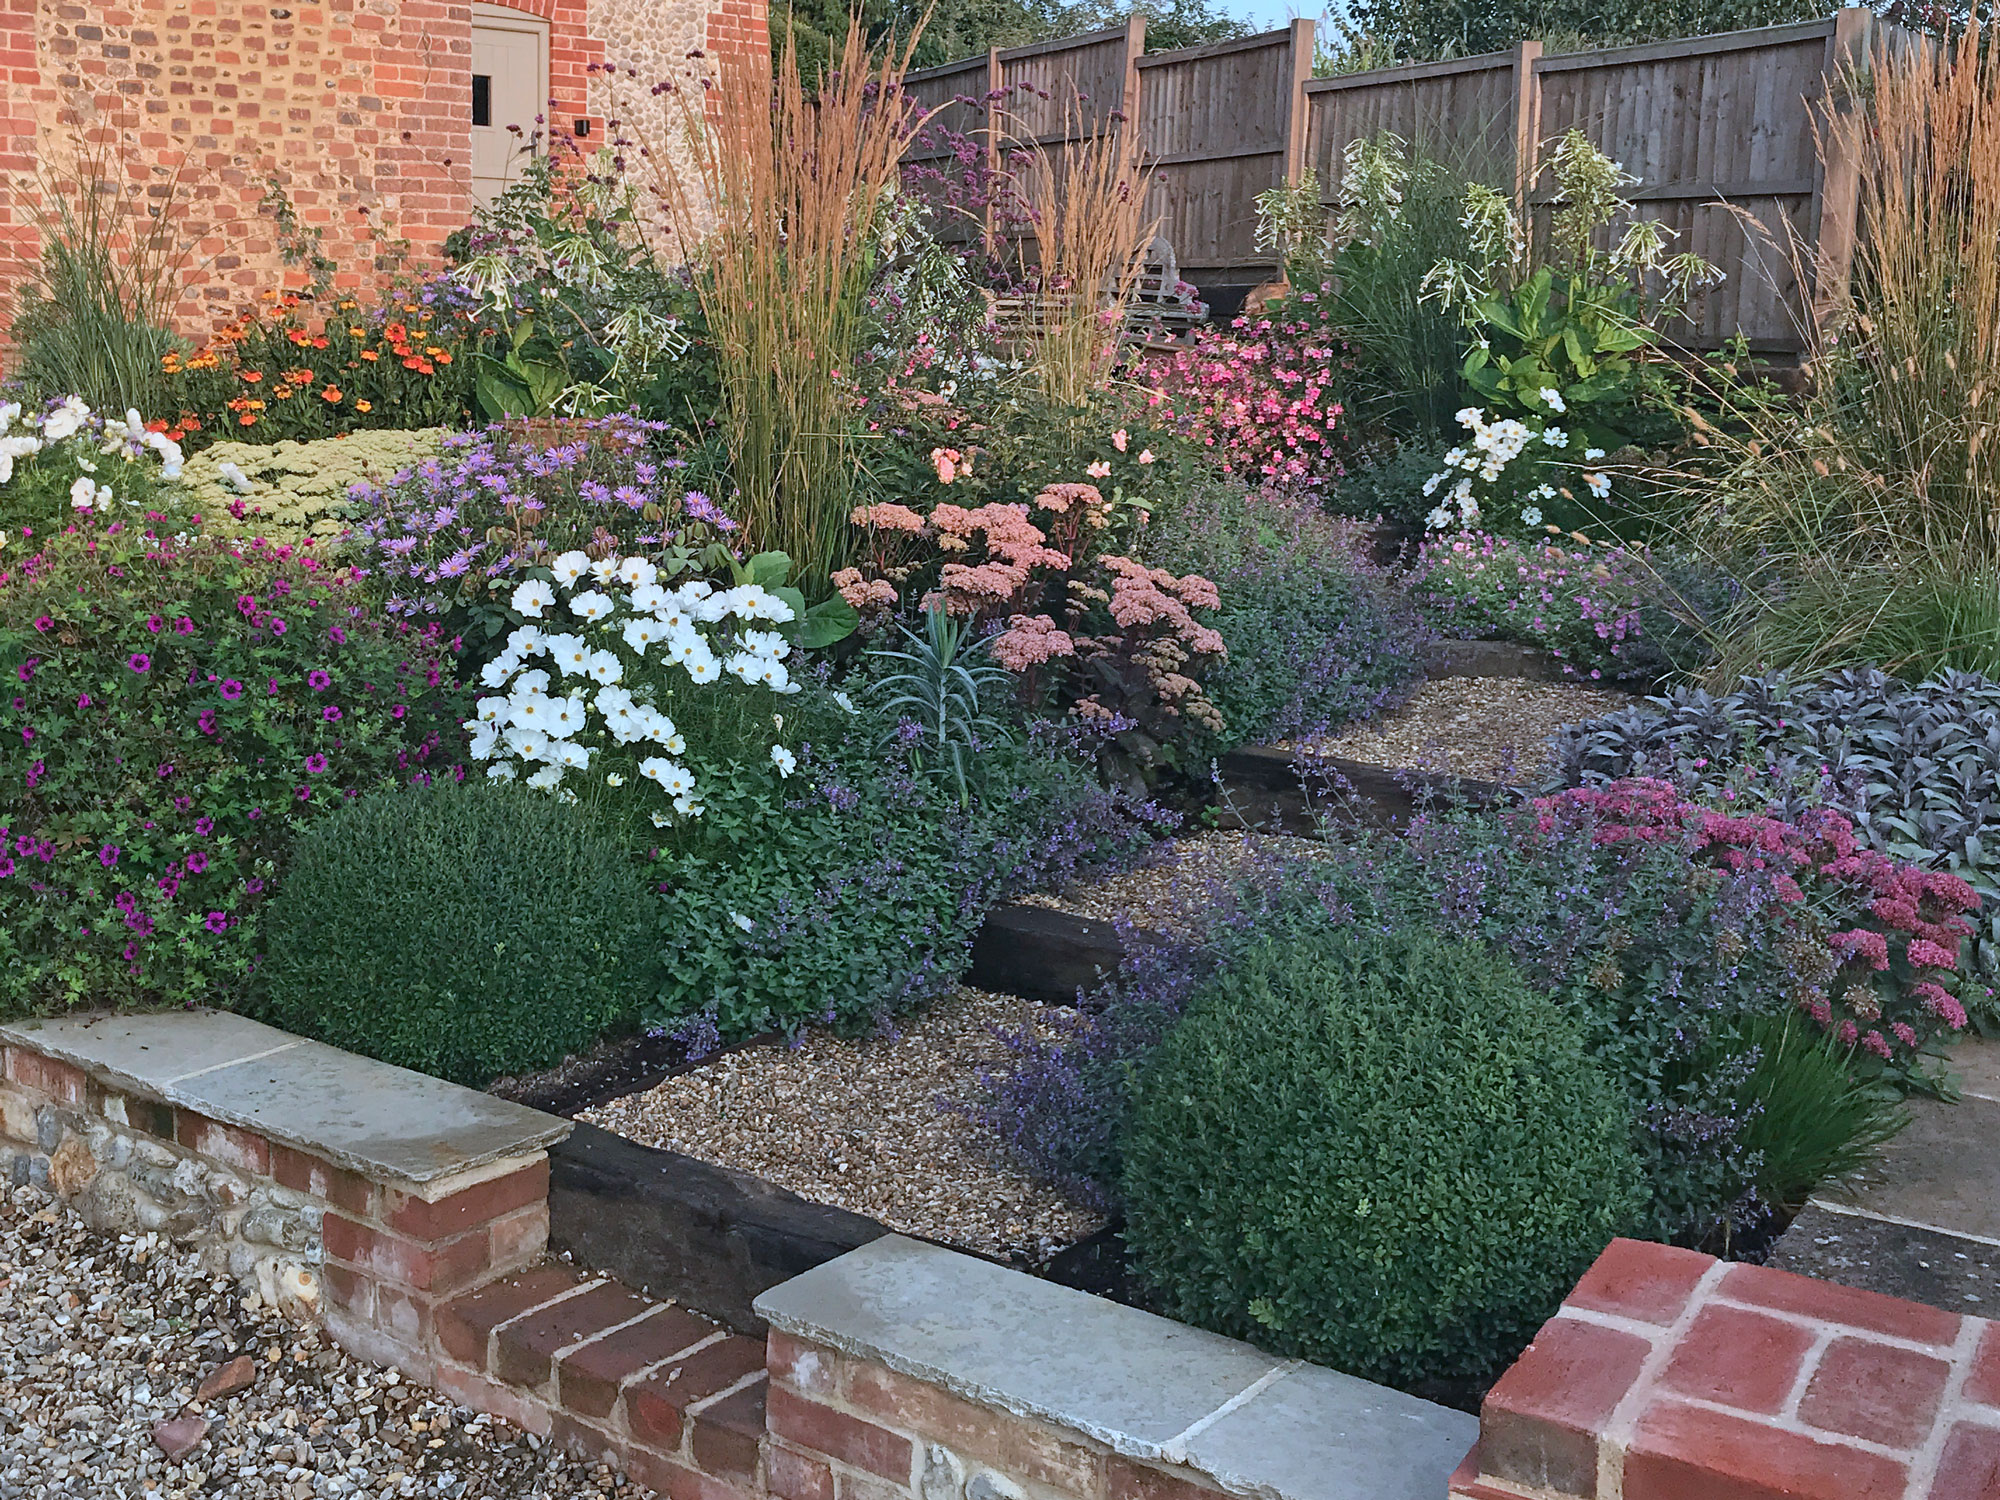 At the start of September, Sedums, Geranium and other perennials are still going strong, ably supported by tobacco and Cosmos